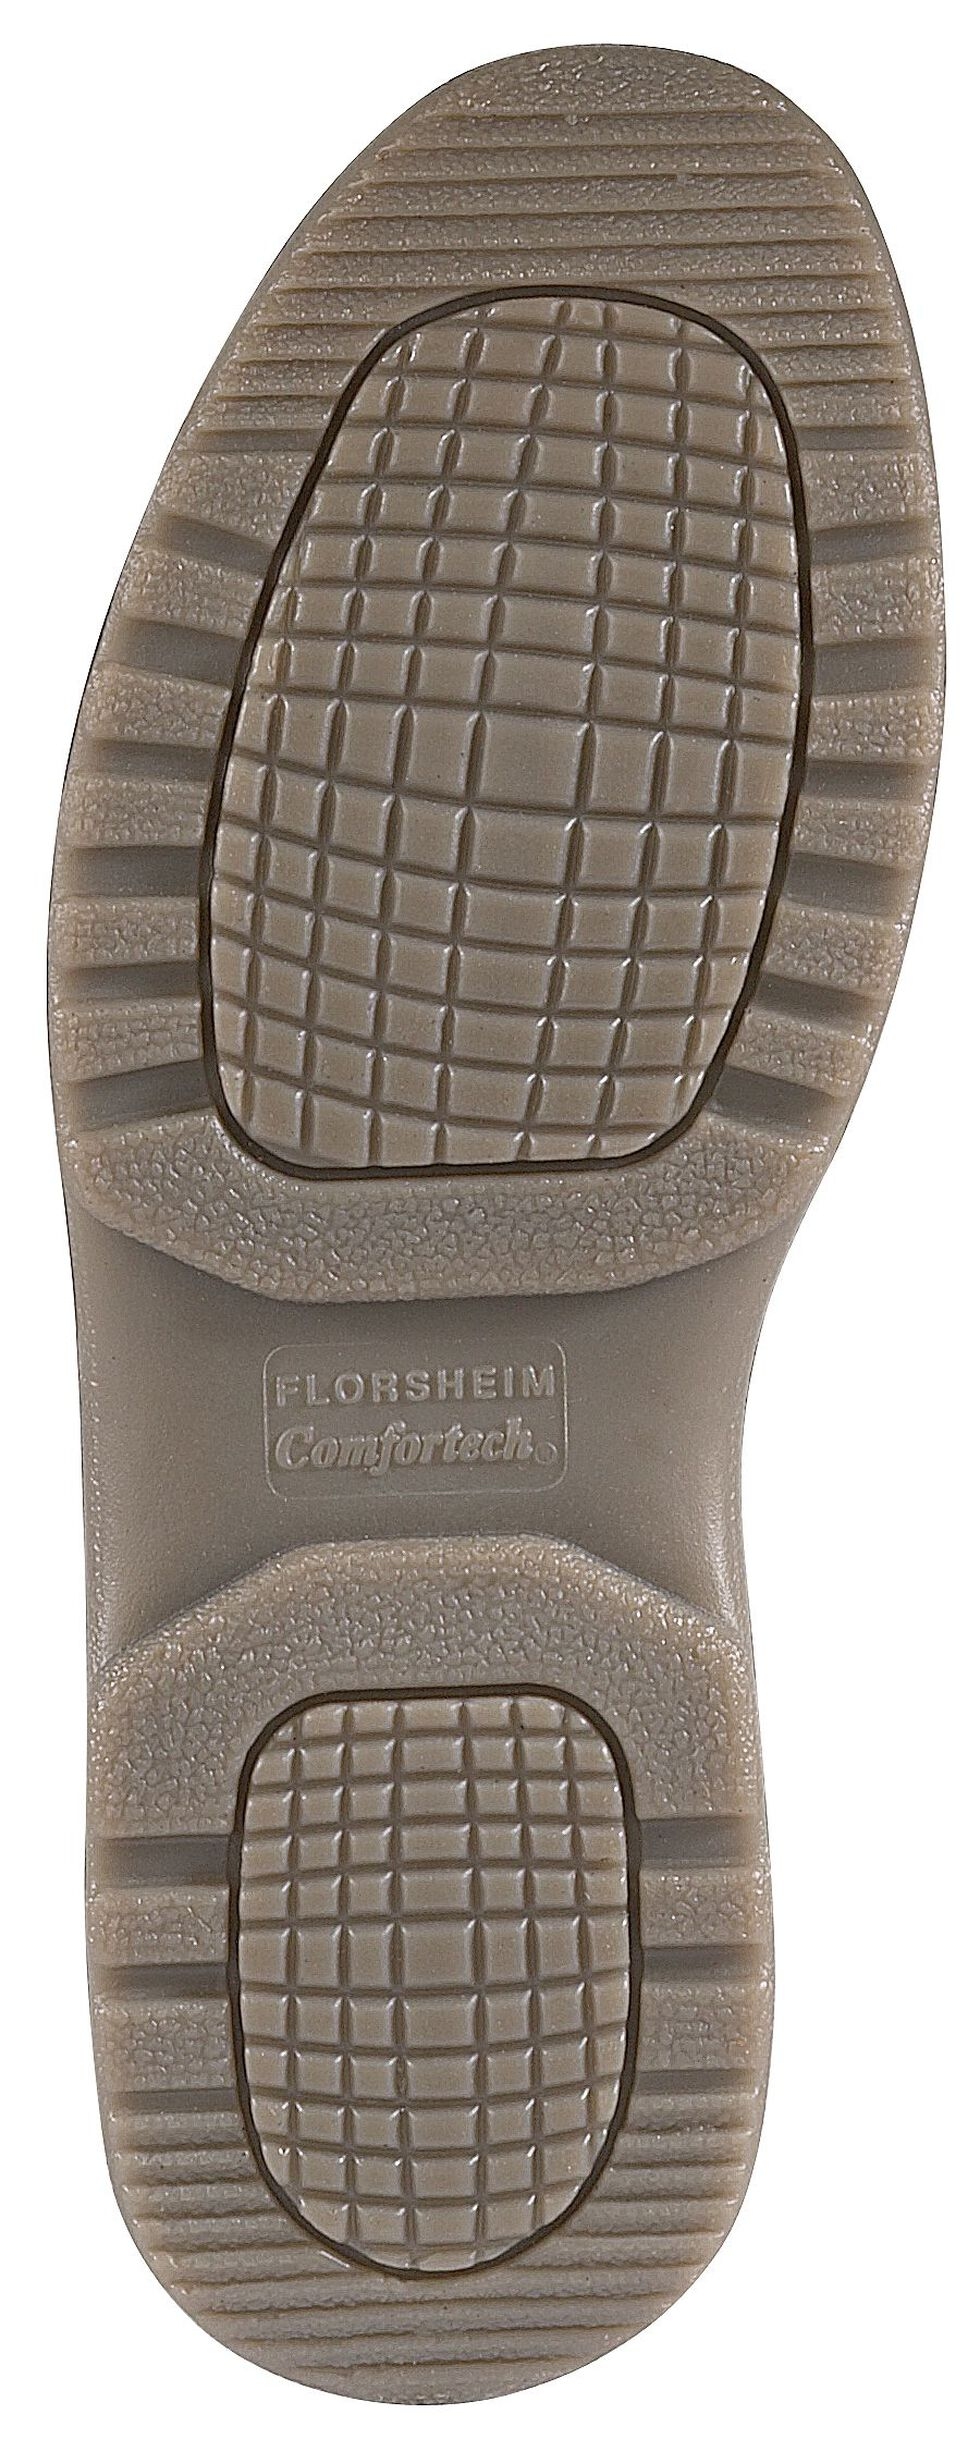 Florsheim Women's Compadre Oxford Work Shoes - Composite Toe, Brown, hi-res